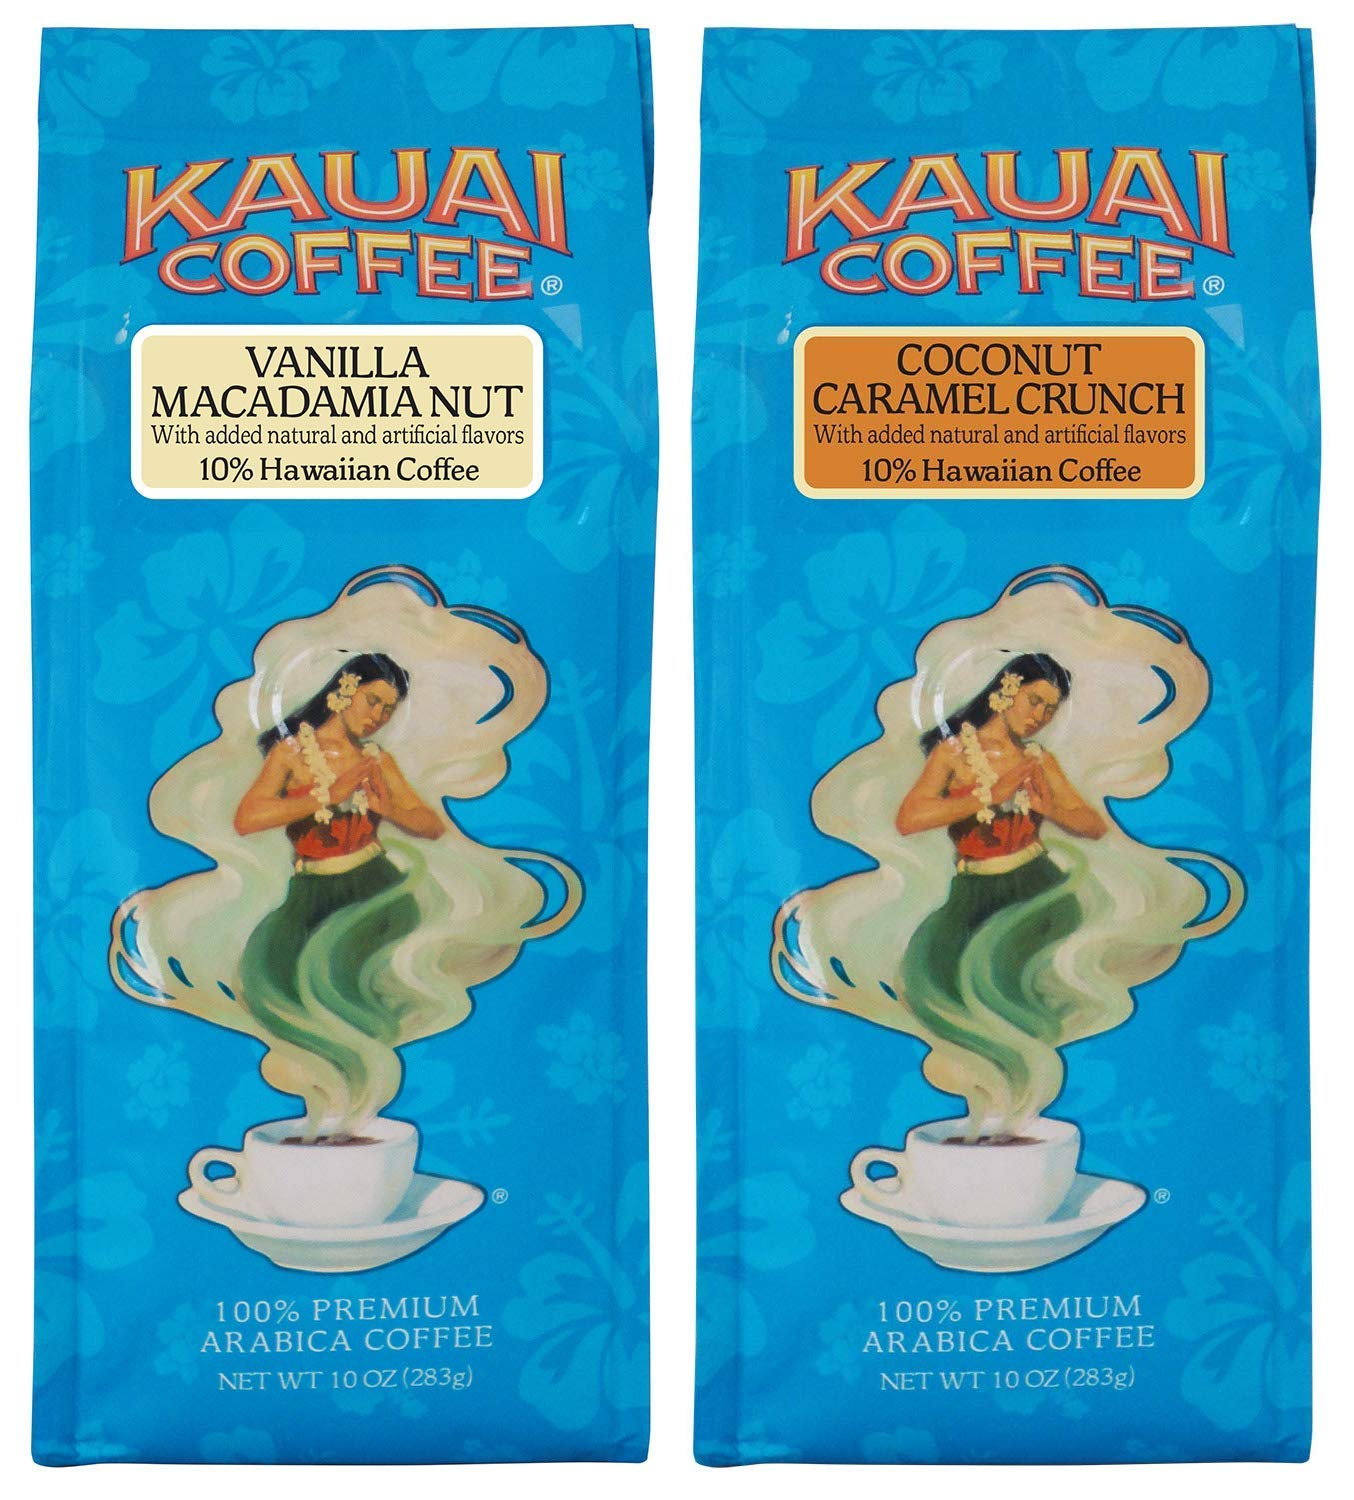 Kauai Coffee, Variety Pack, Vanilla Macadamia Nut and Coconut Caramel Crunch, Ground Coffee, 10 Ounce Bag (Pack of 2)